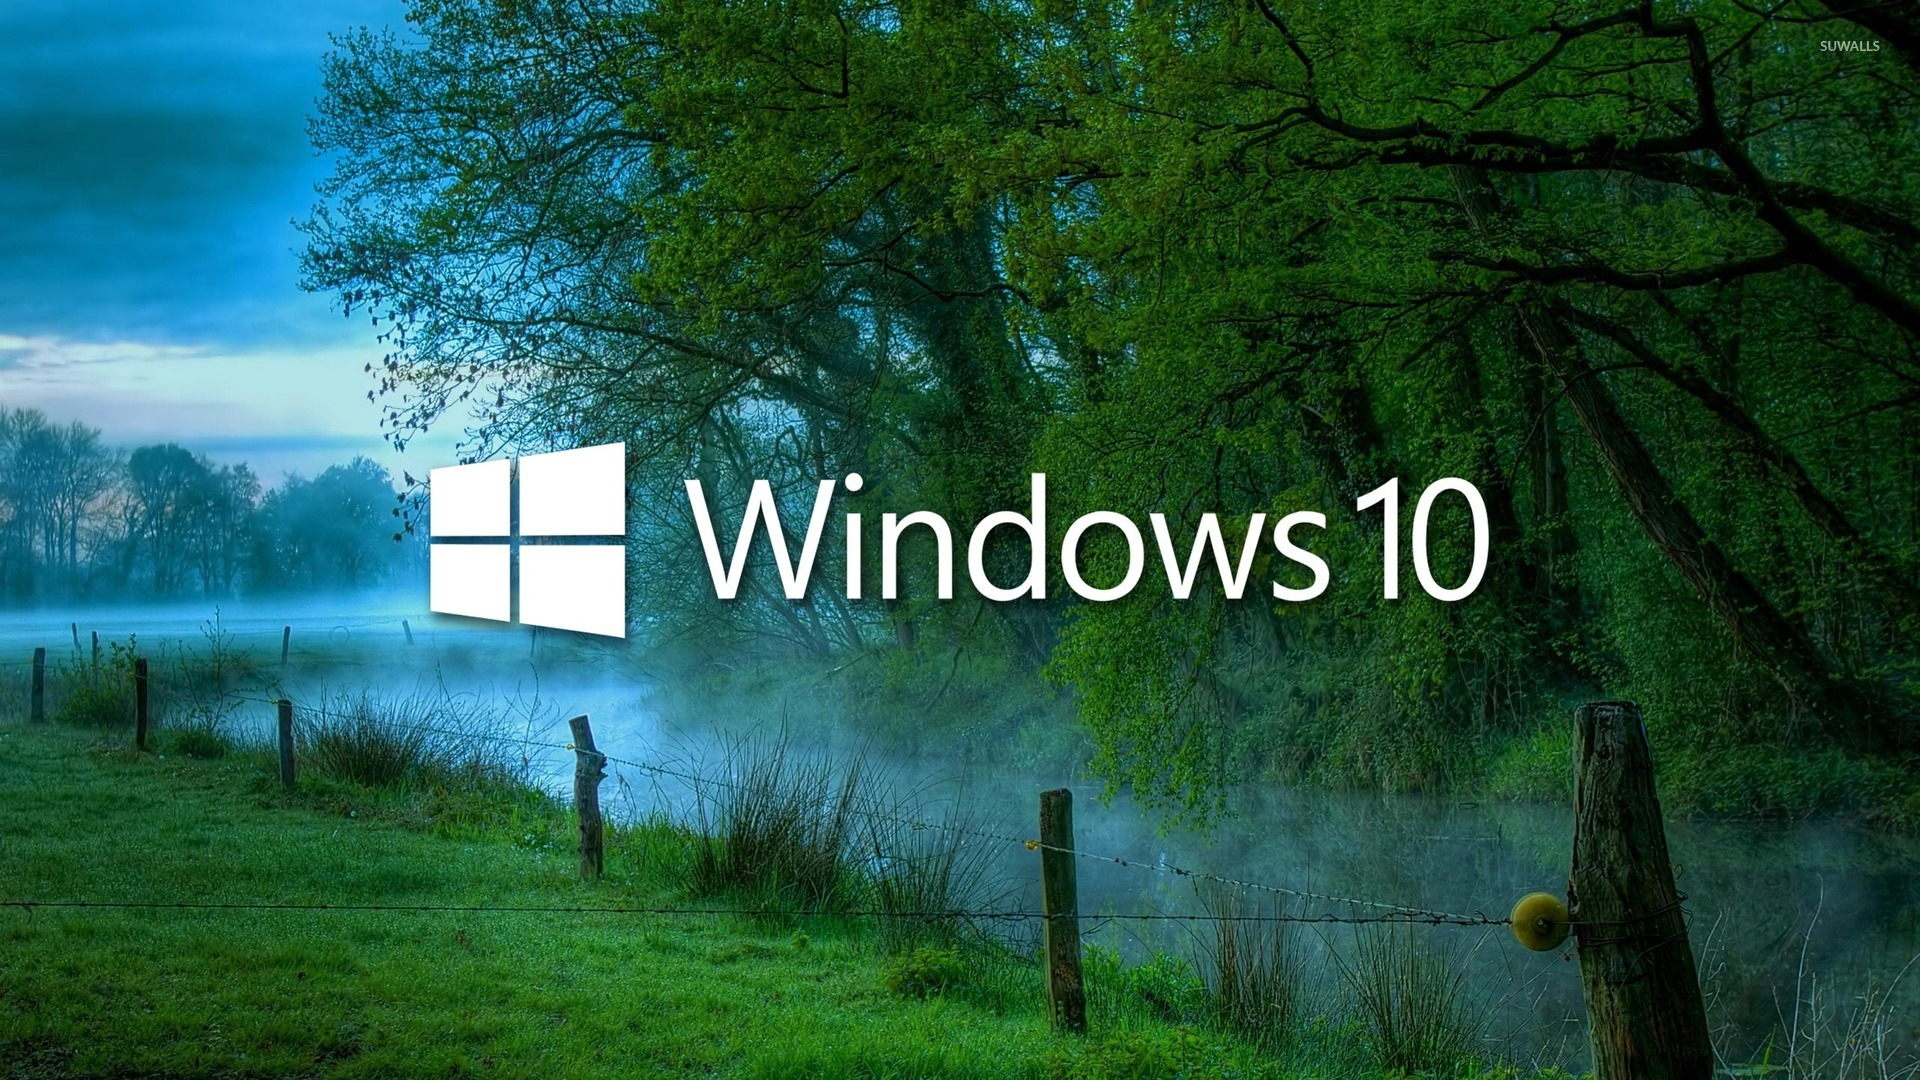 Windows 10 In The Misty Morning Logo With Text Wallpaper Computer Wallpapers 47635